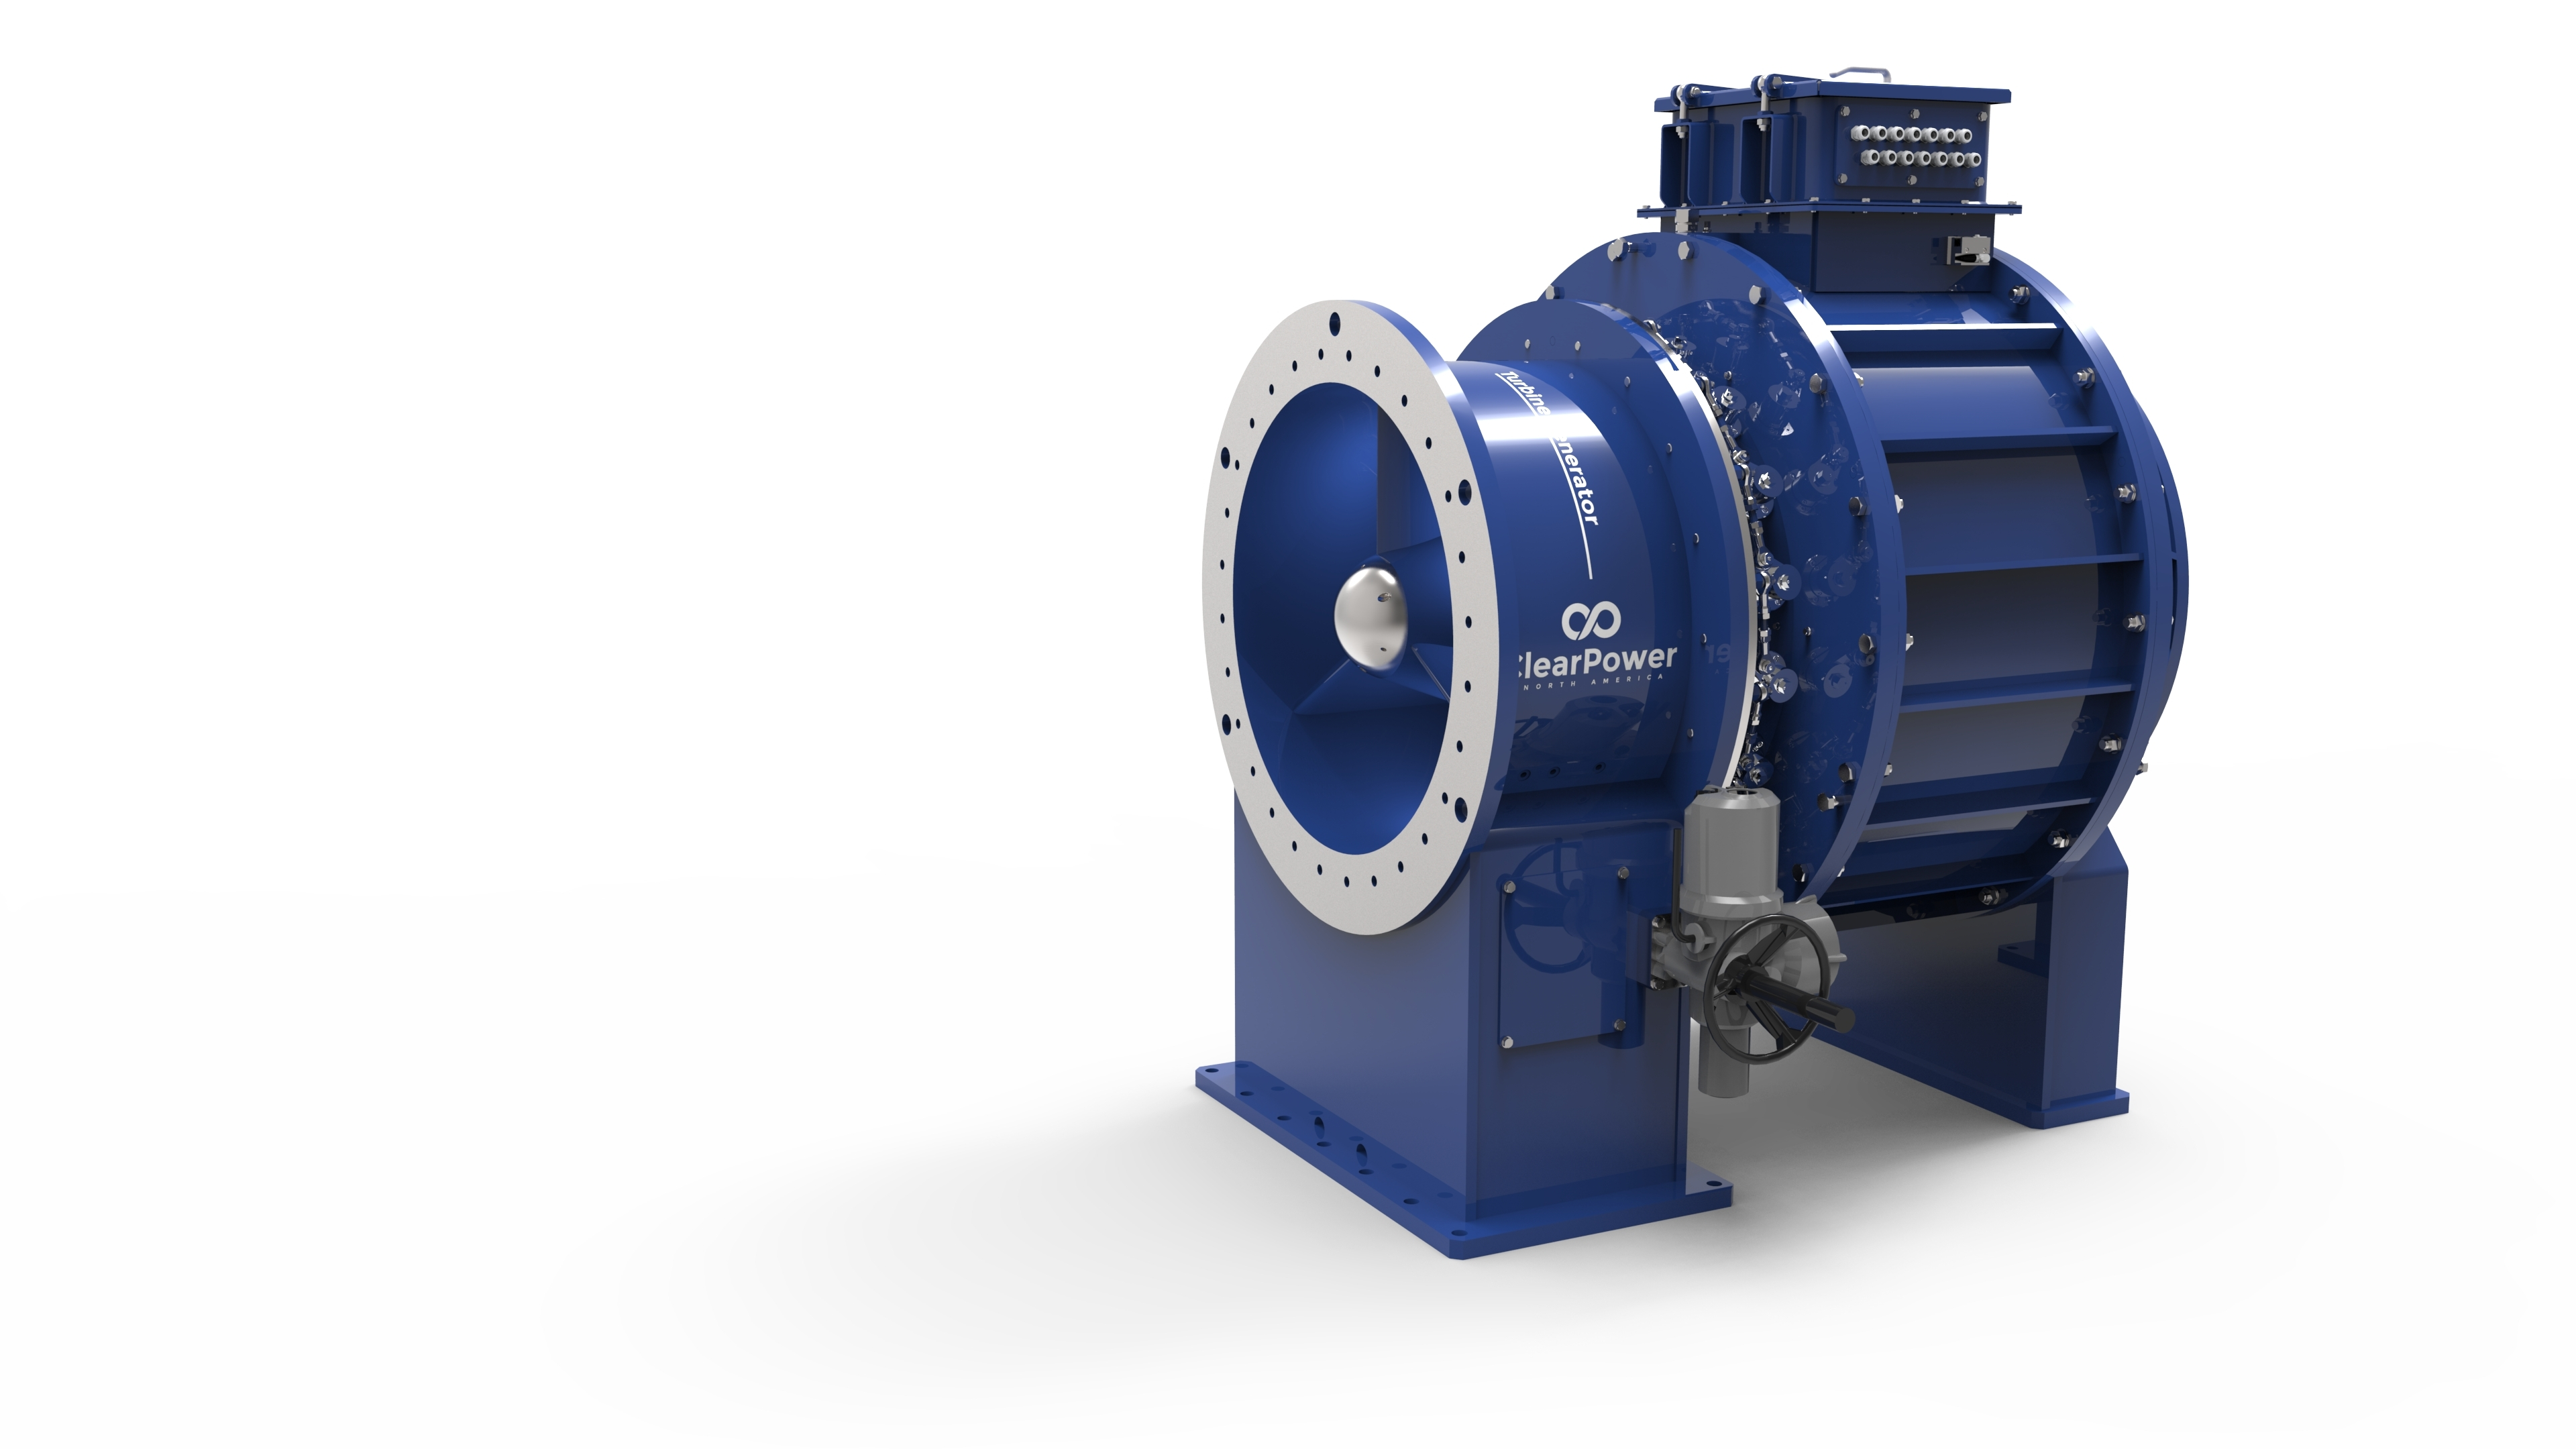 ClearPower North America Launches its Industrial Turbine Generator